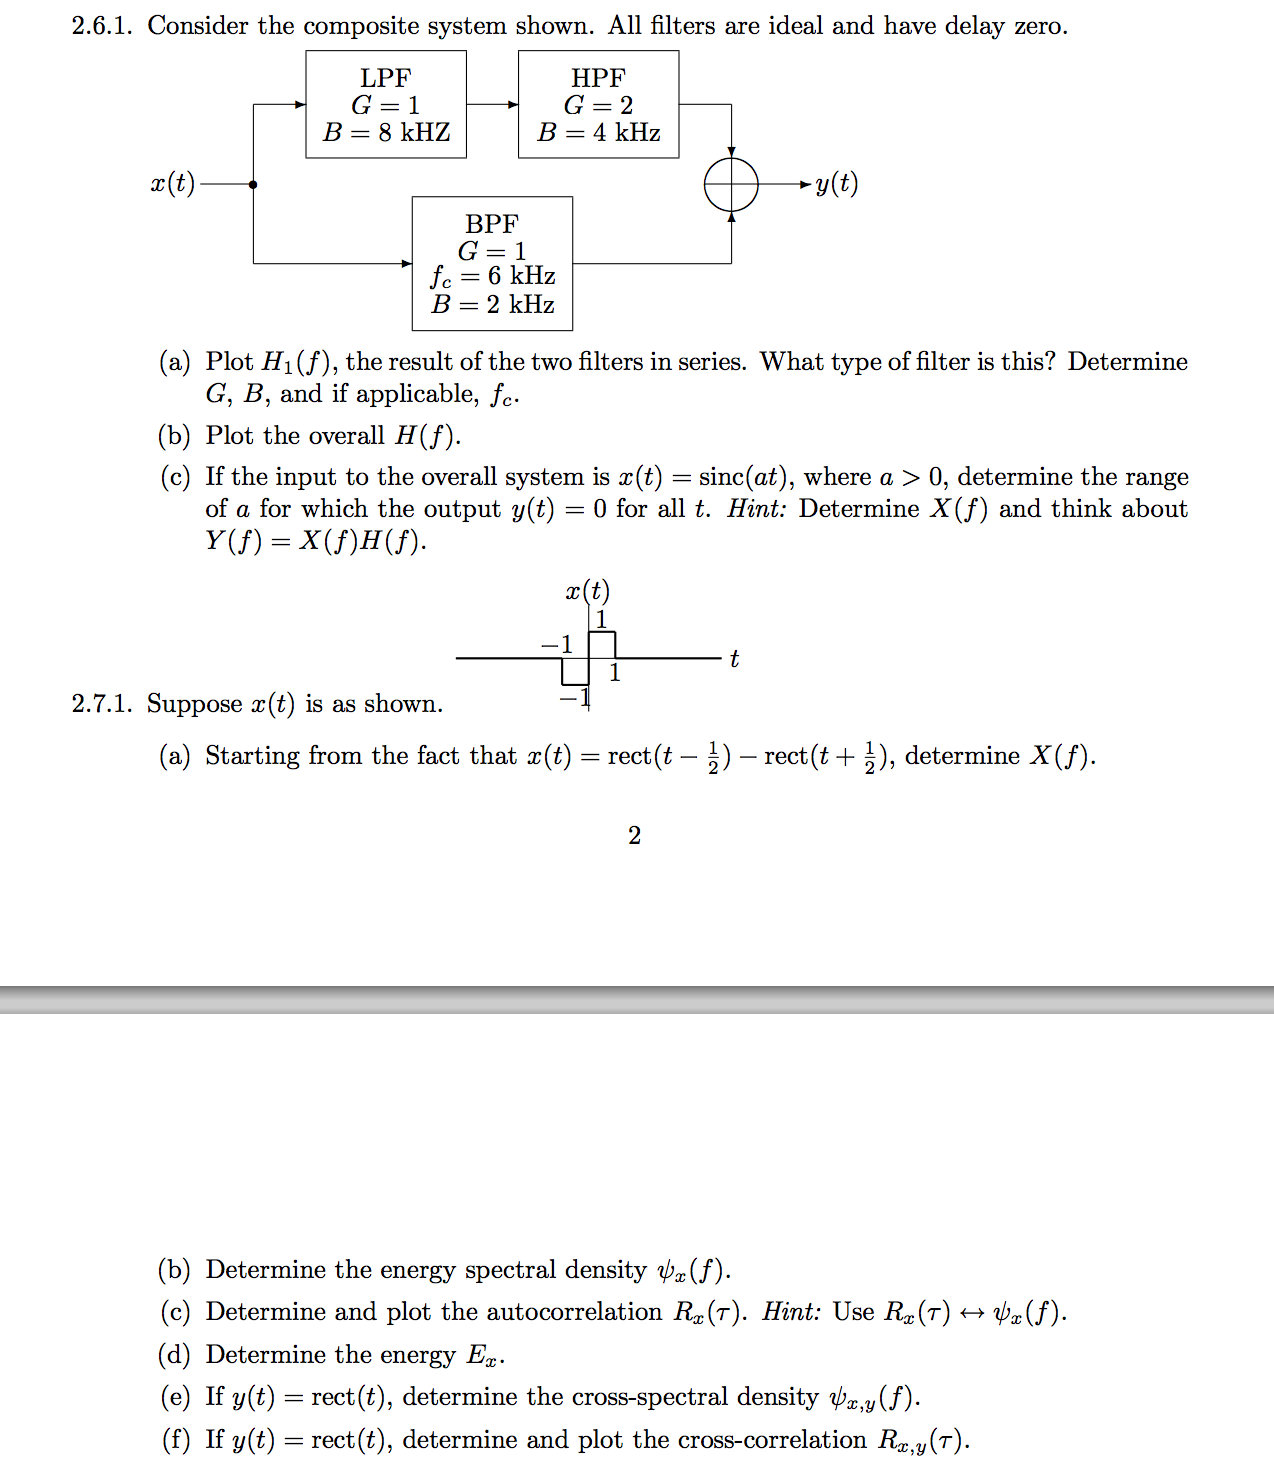 I currently am in need of help with these problems